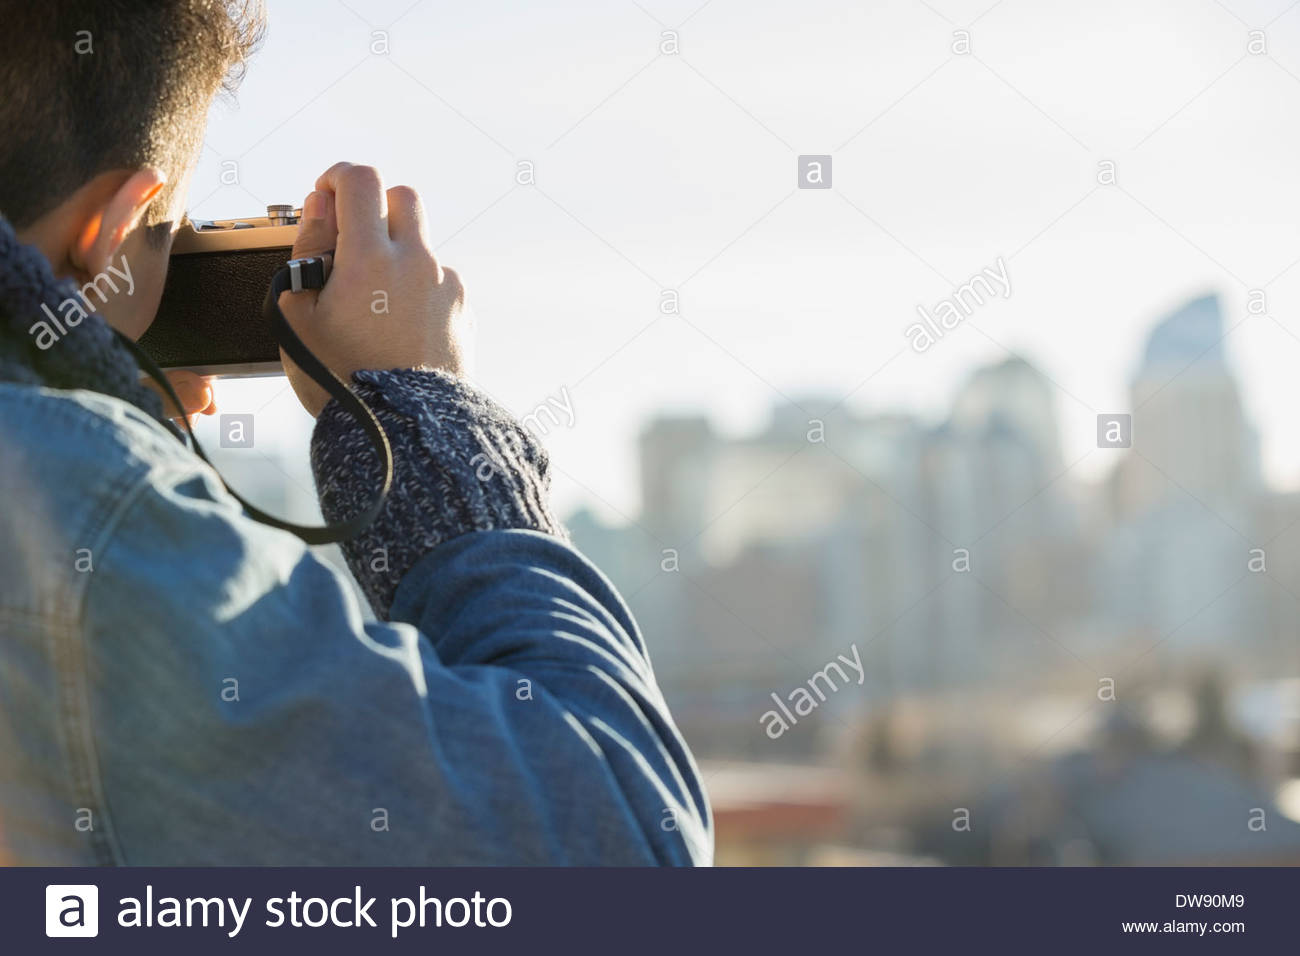 Rear view of man photographing cityscape - Stock Image